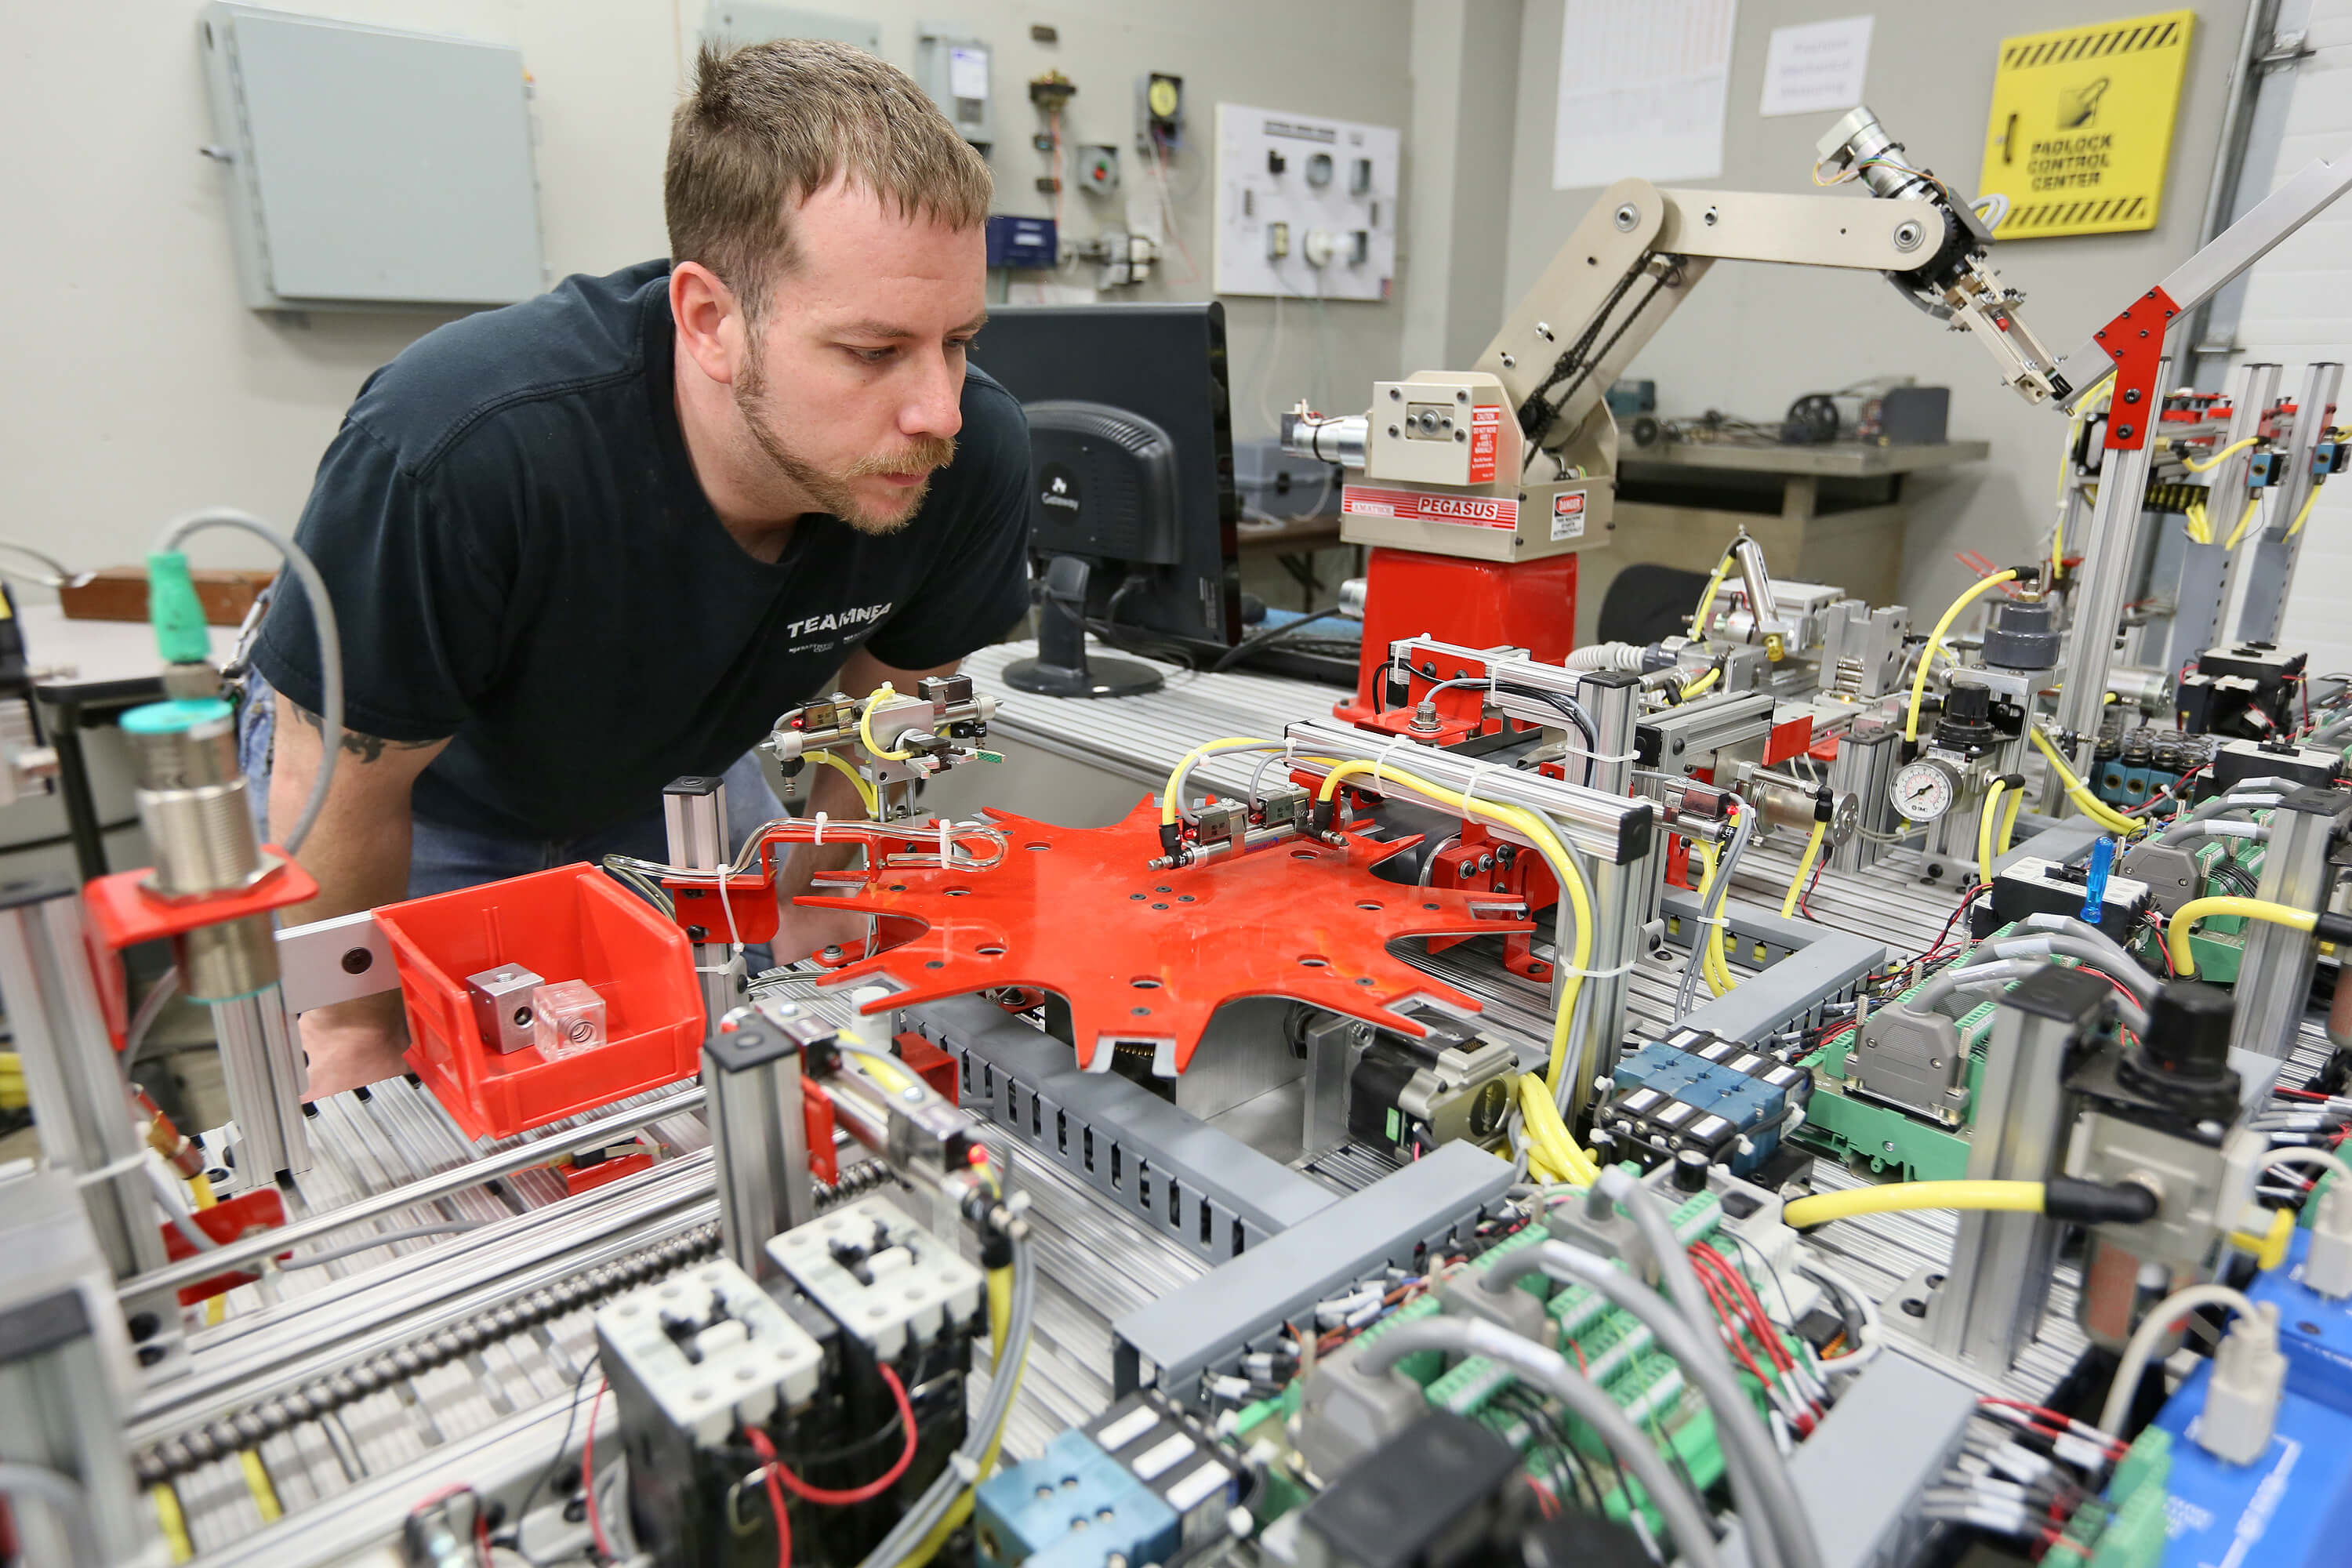 Student looking at machinery in technical program